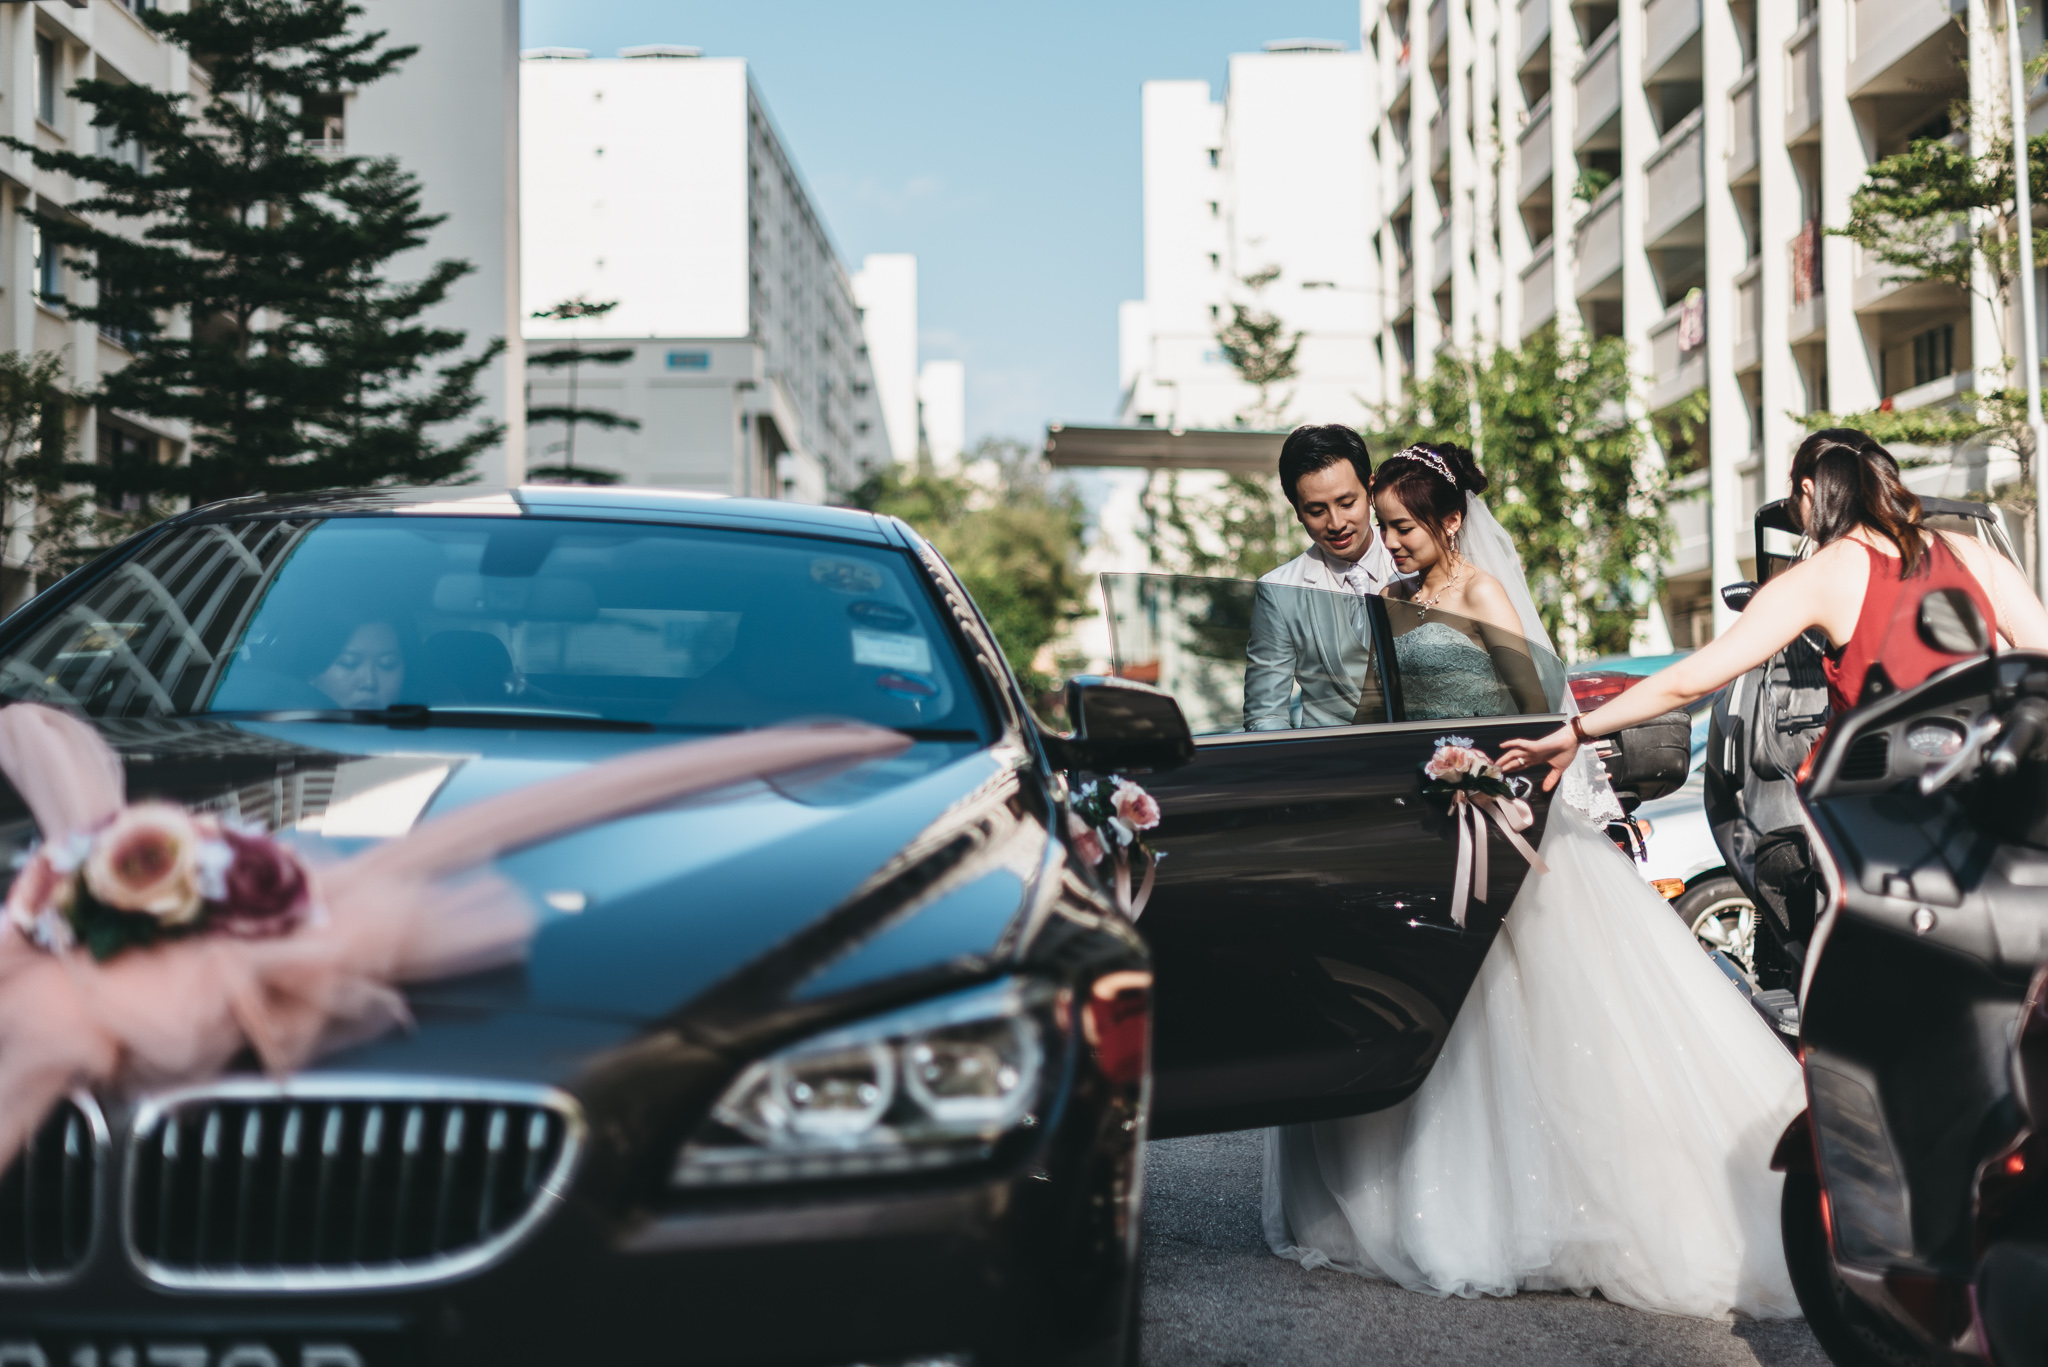 Fiona & Terence Wedding Day Highlights (resized for sharing) - 150.jpg